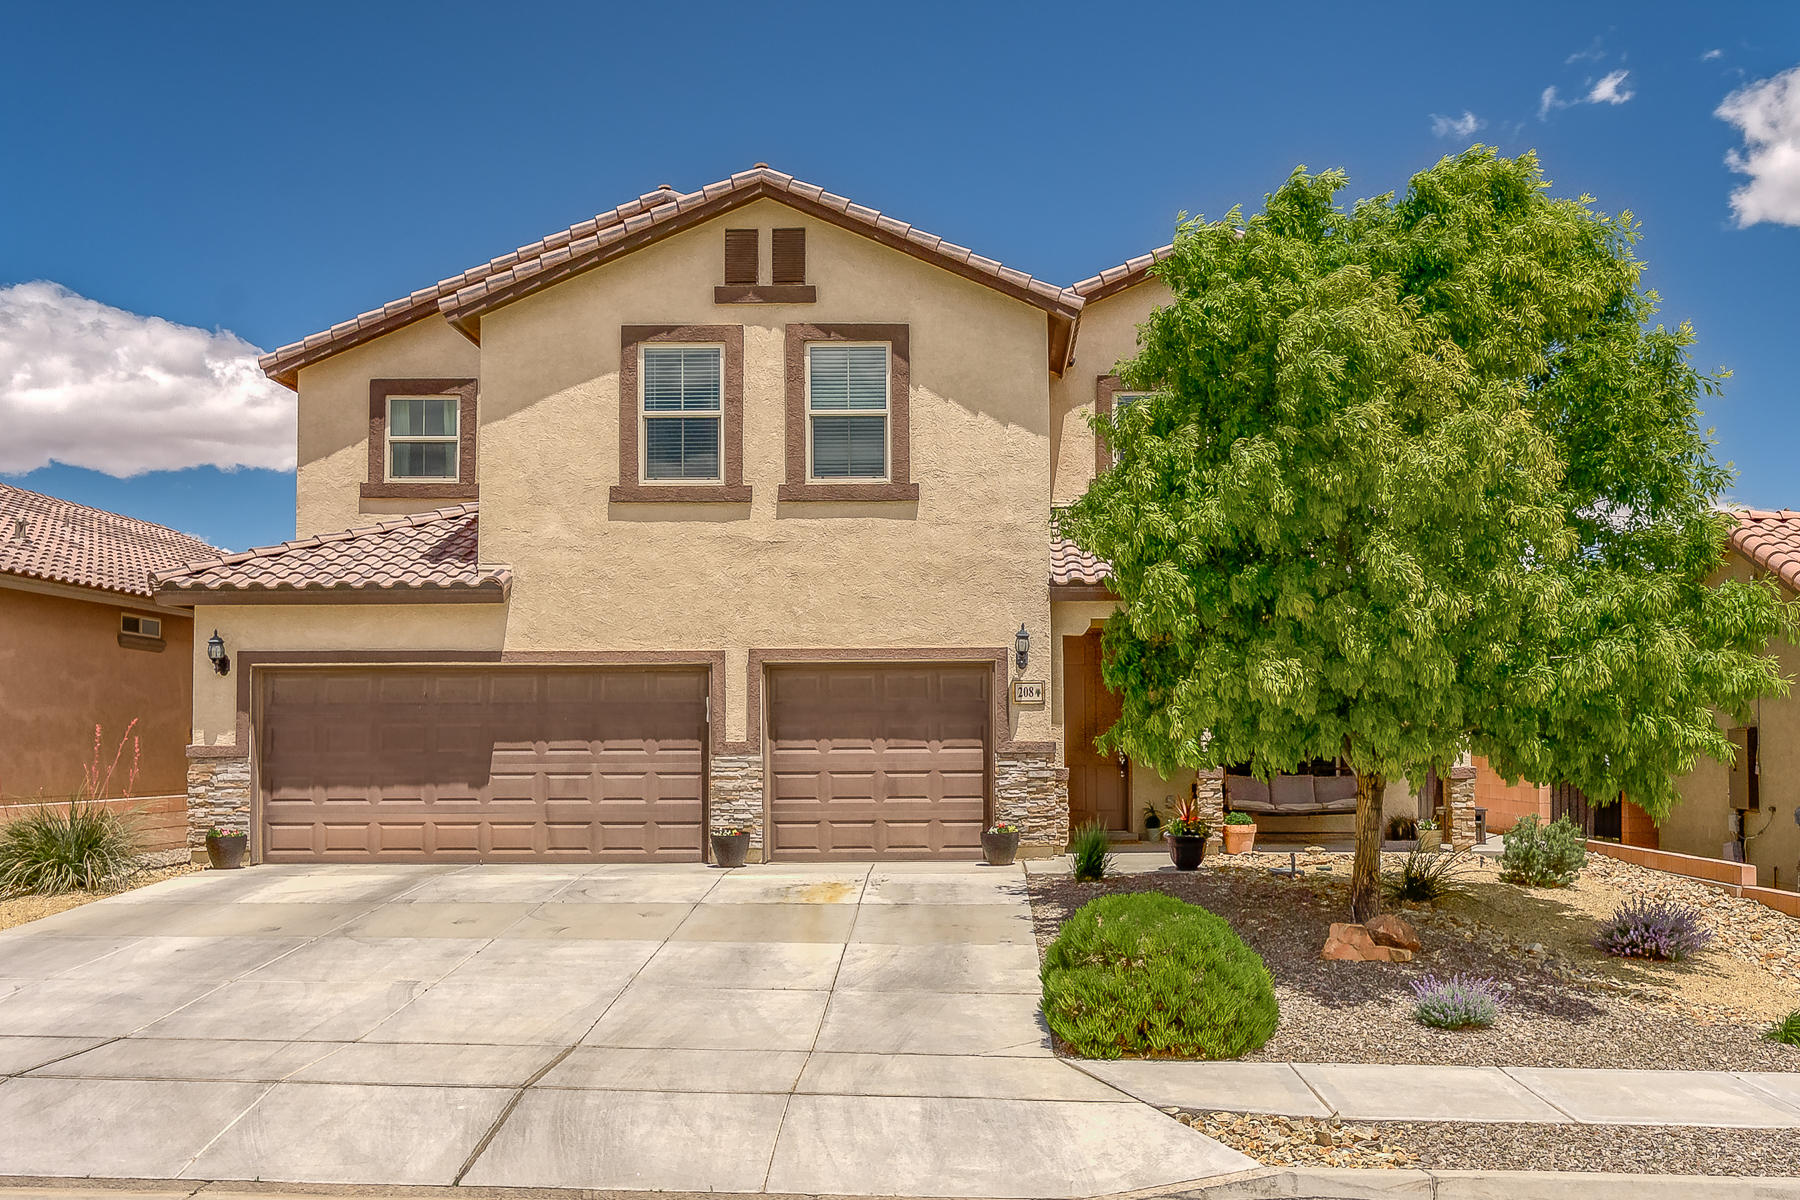 208 NE Valle Alto Drive, Rio Rancho, New Mexico